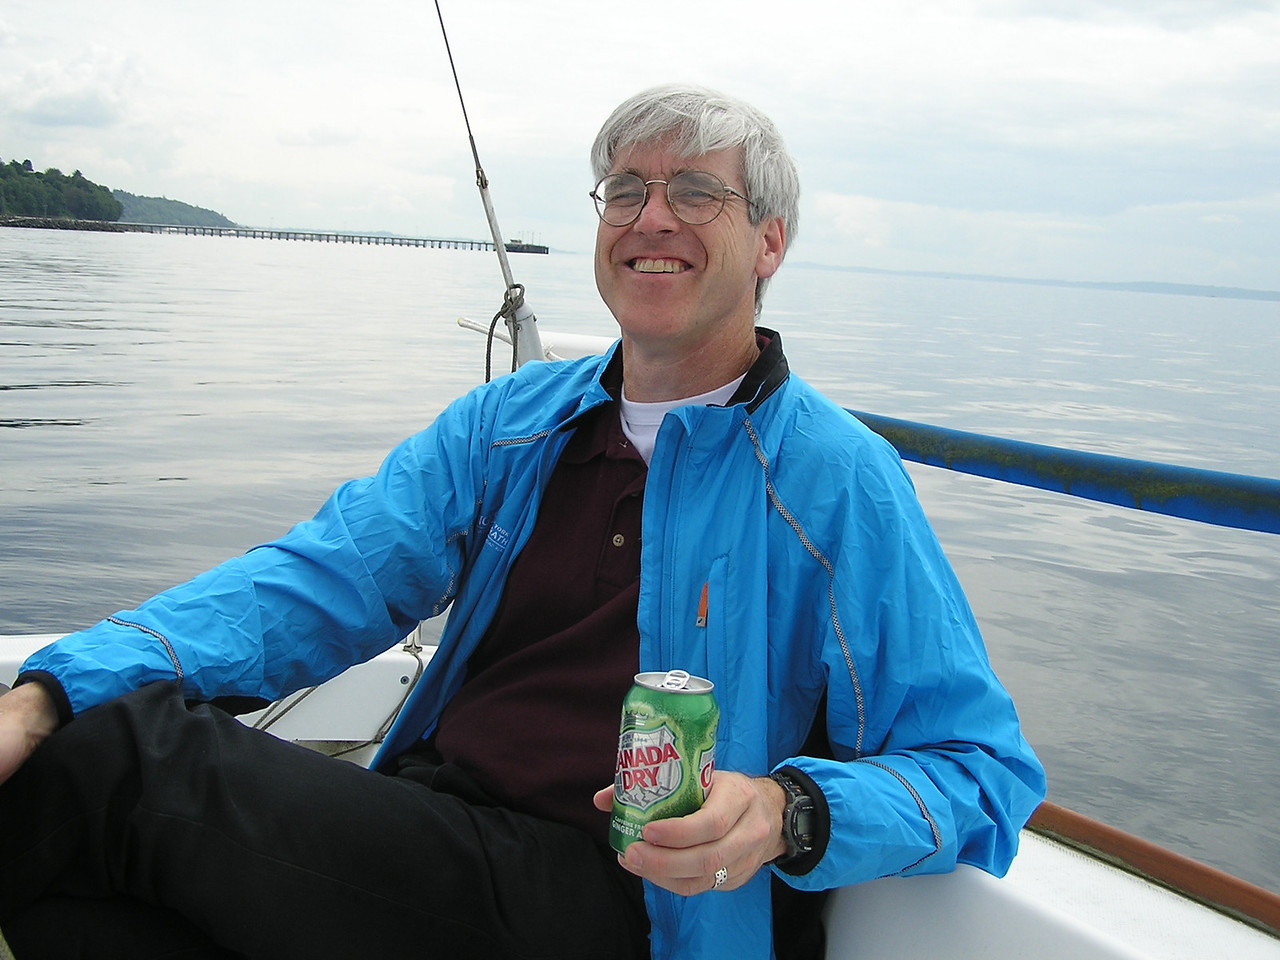 Martin's brother Glenn at the helm of Martin's 21 foot Beneteau sailboat on Puget Sound off of Edmonds.